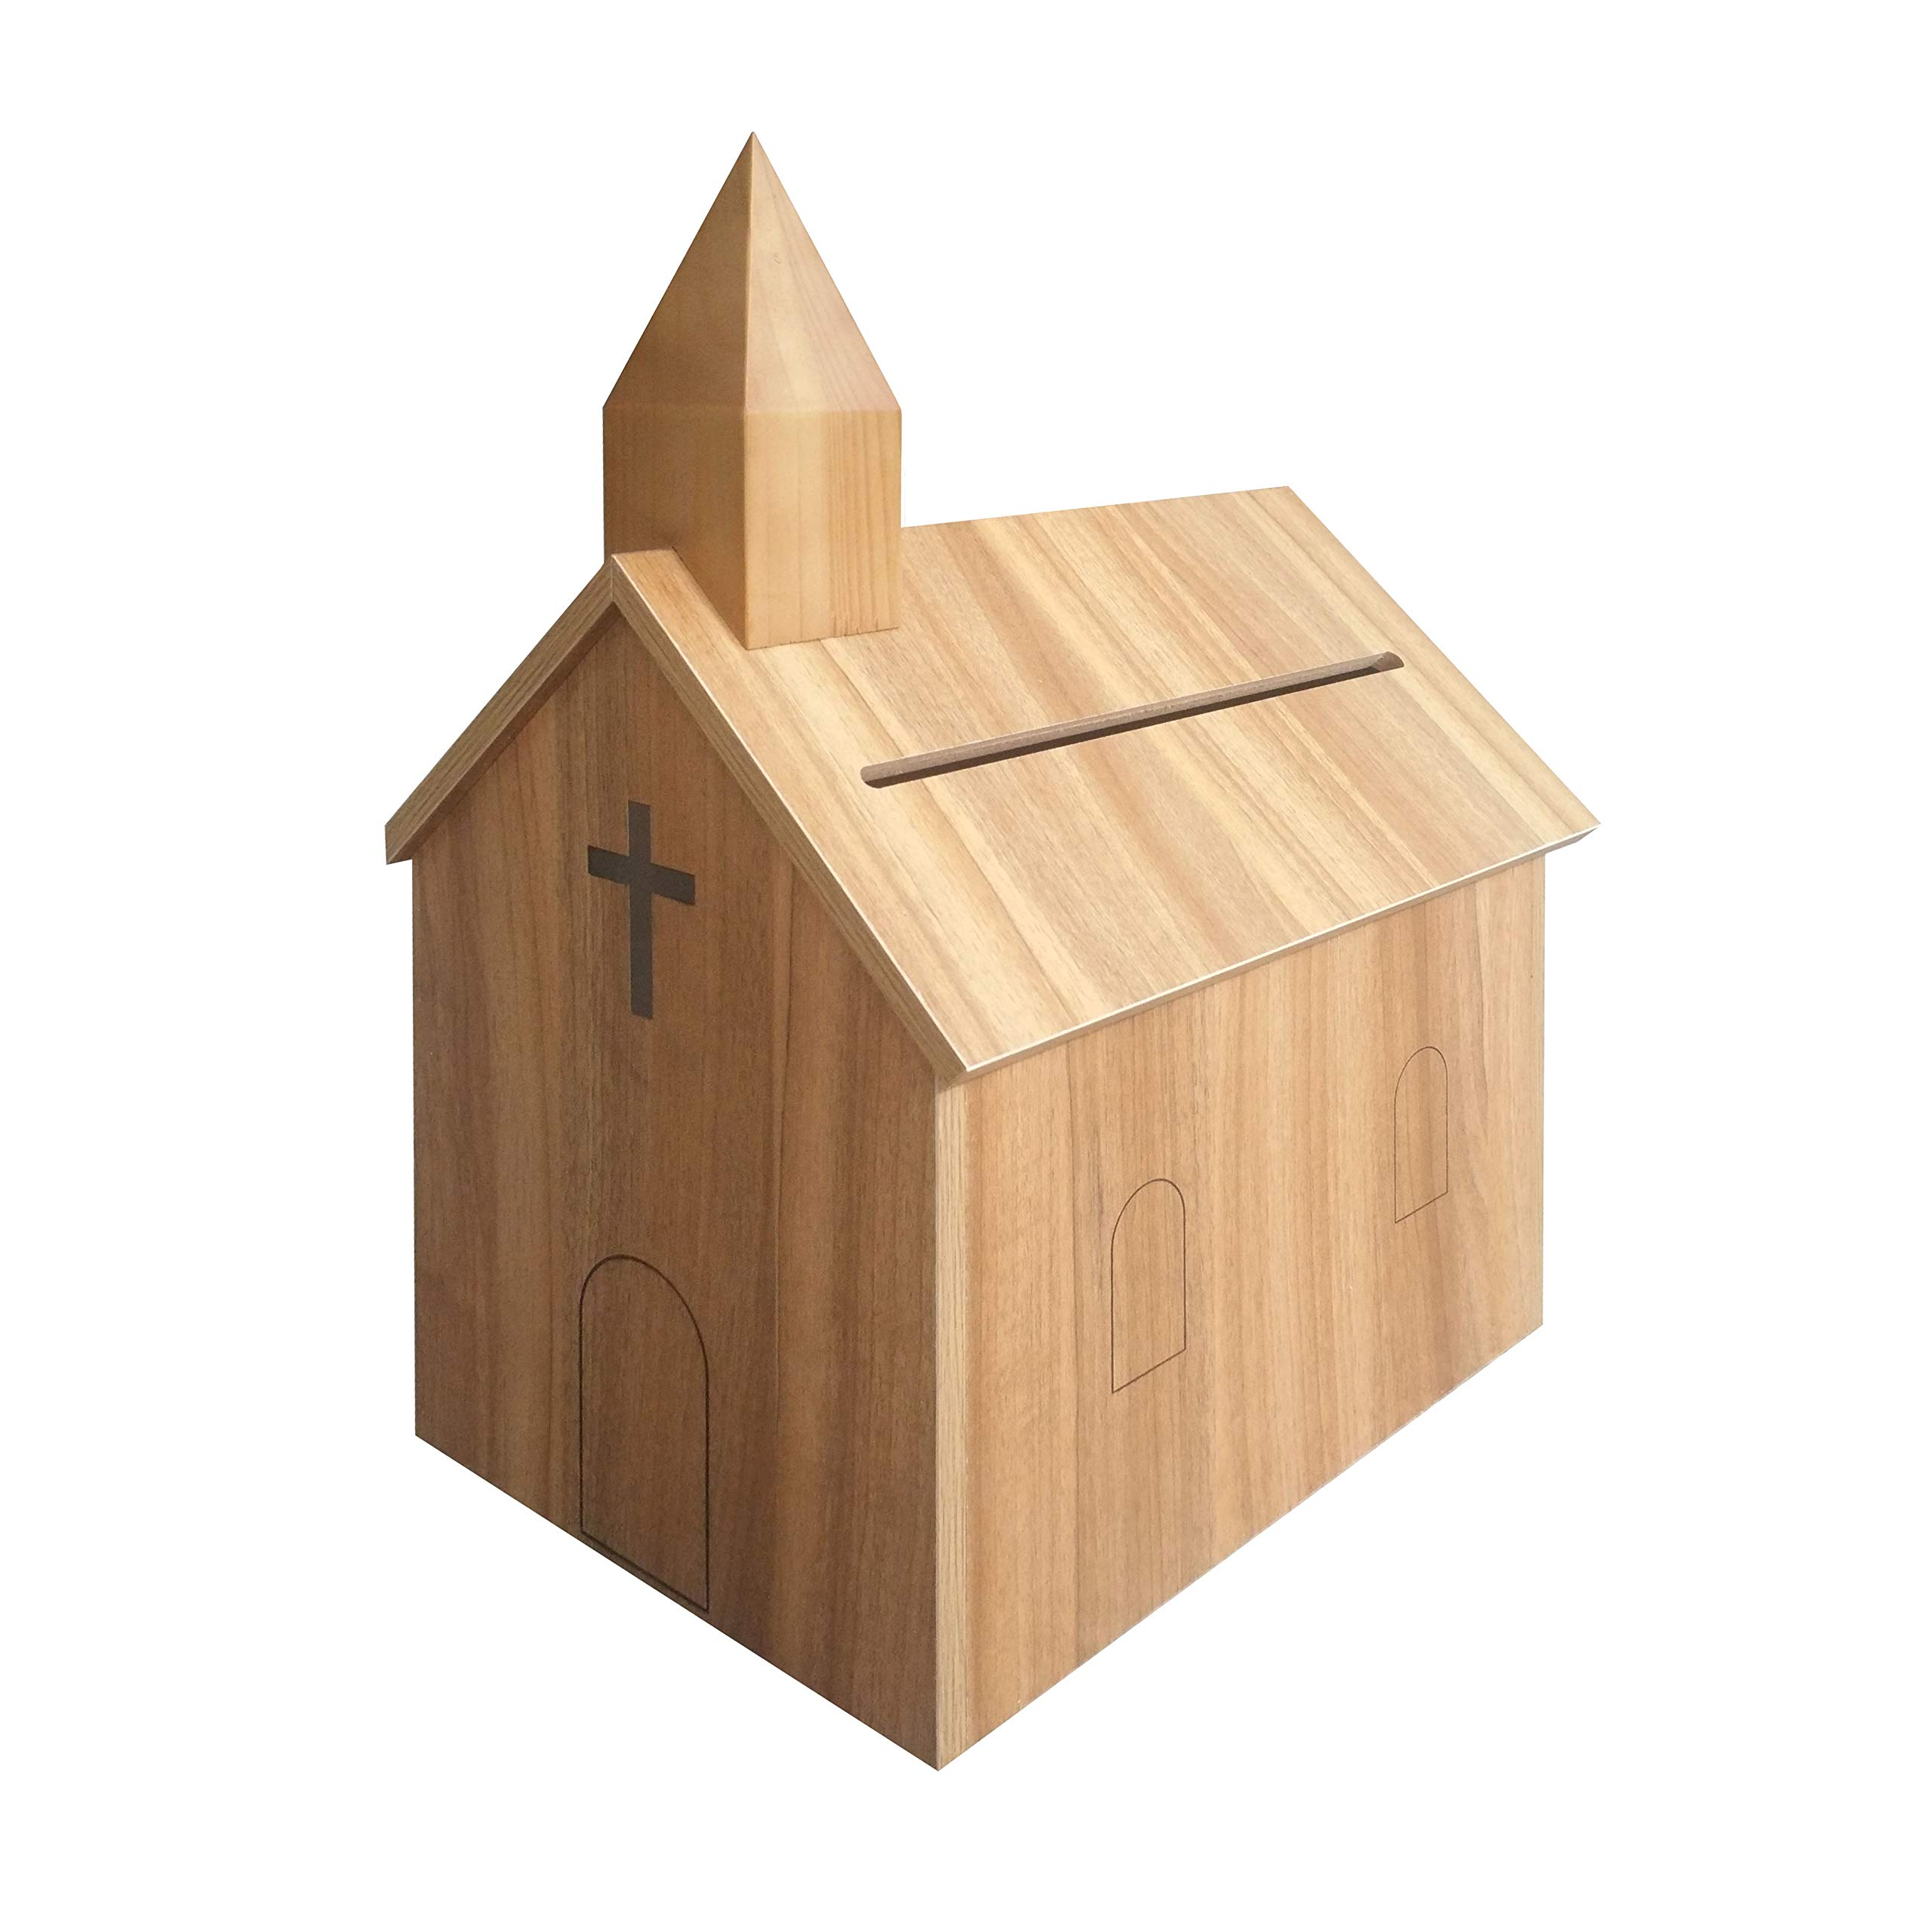 Fixture Displays Church Steeple Box Collection Box Tithing Donation Box Fundraising Charity Box 21397 by FixtureDisplays